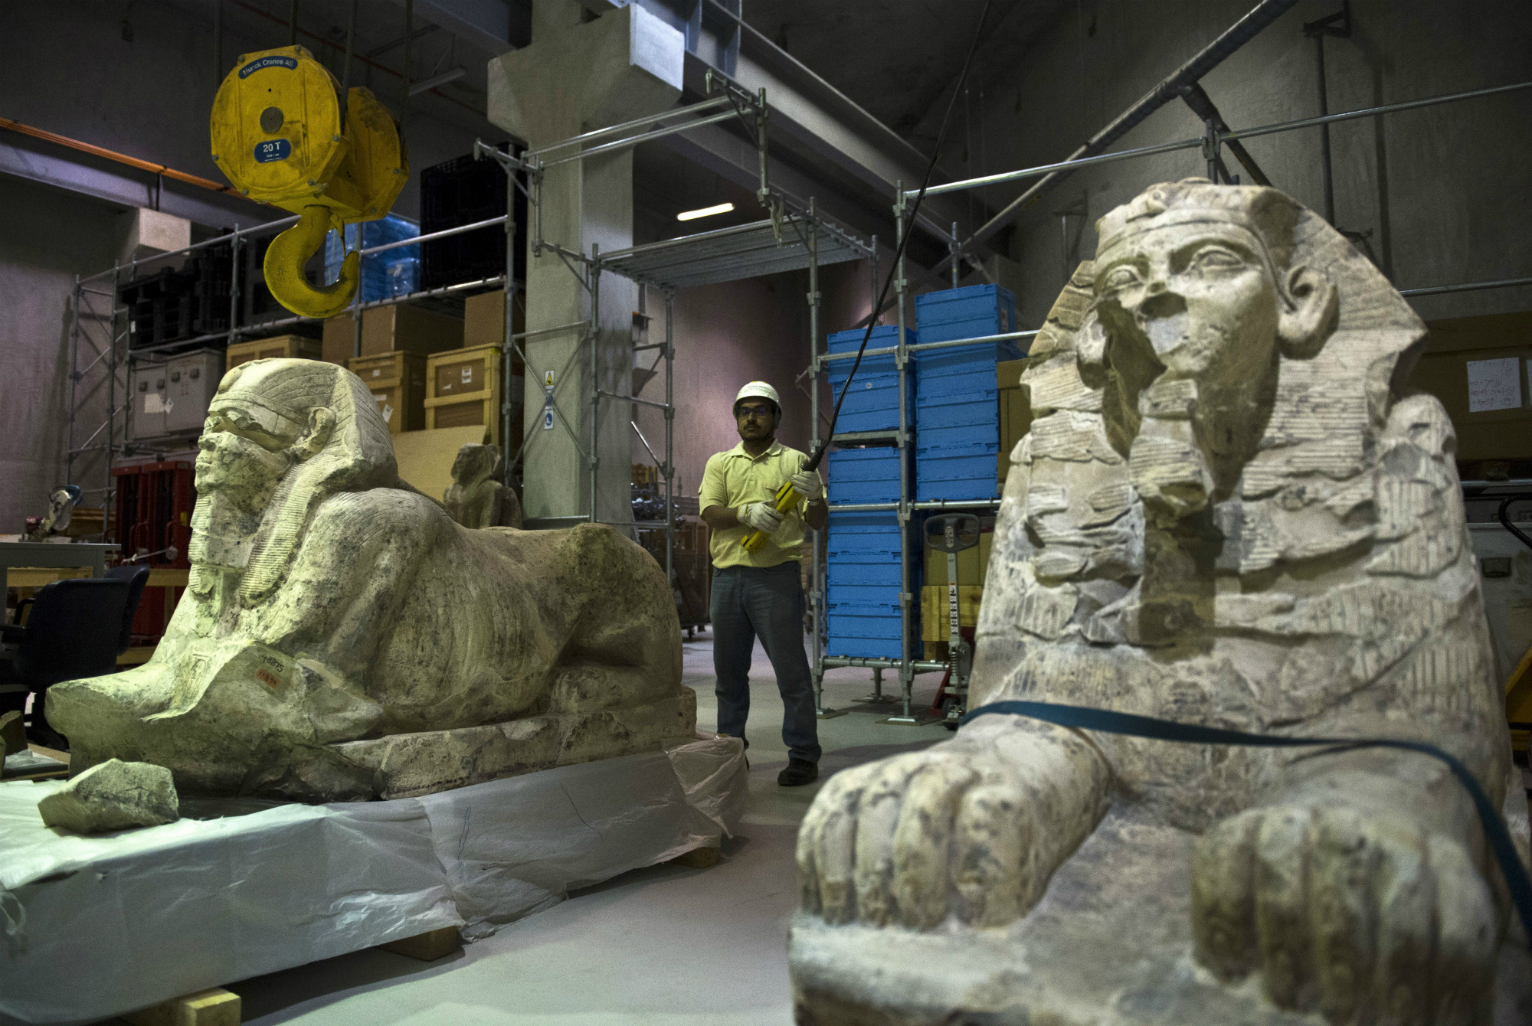 Αποτέλεσμα εικόνας για Egypt is having high hopes on its new museum in attracting visitors